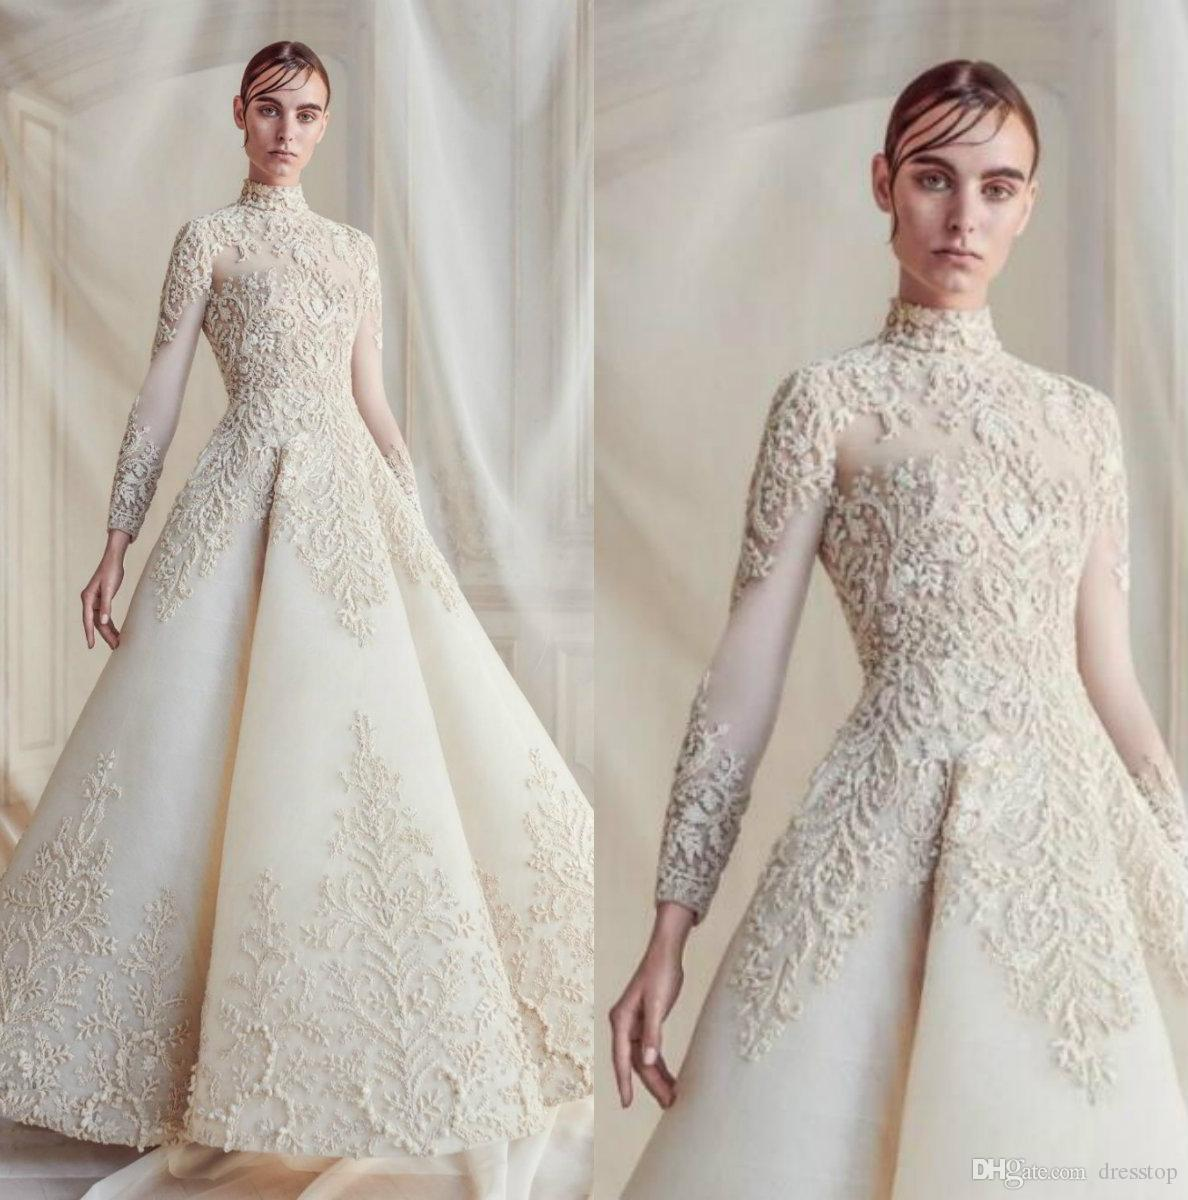 Winter Wedding Dress.Luxury 2019 Fall Winter Wedding Dresses High Neck Long Sleeve Appliqued Thick Lace Wedding Bridal Gowns Robe De Mariee Plus Wedding Dress